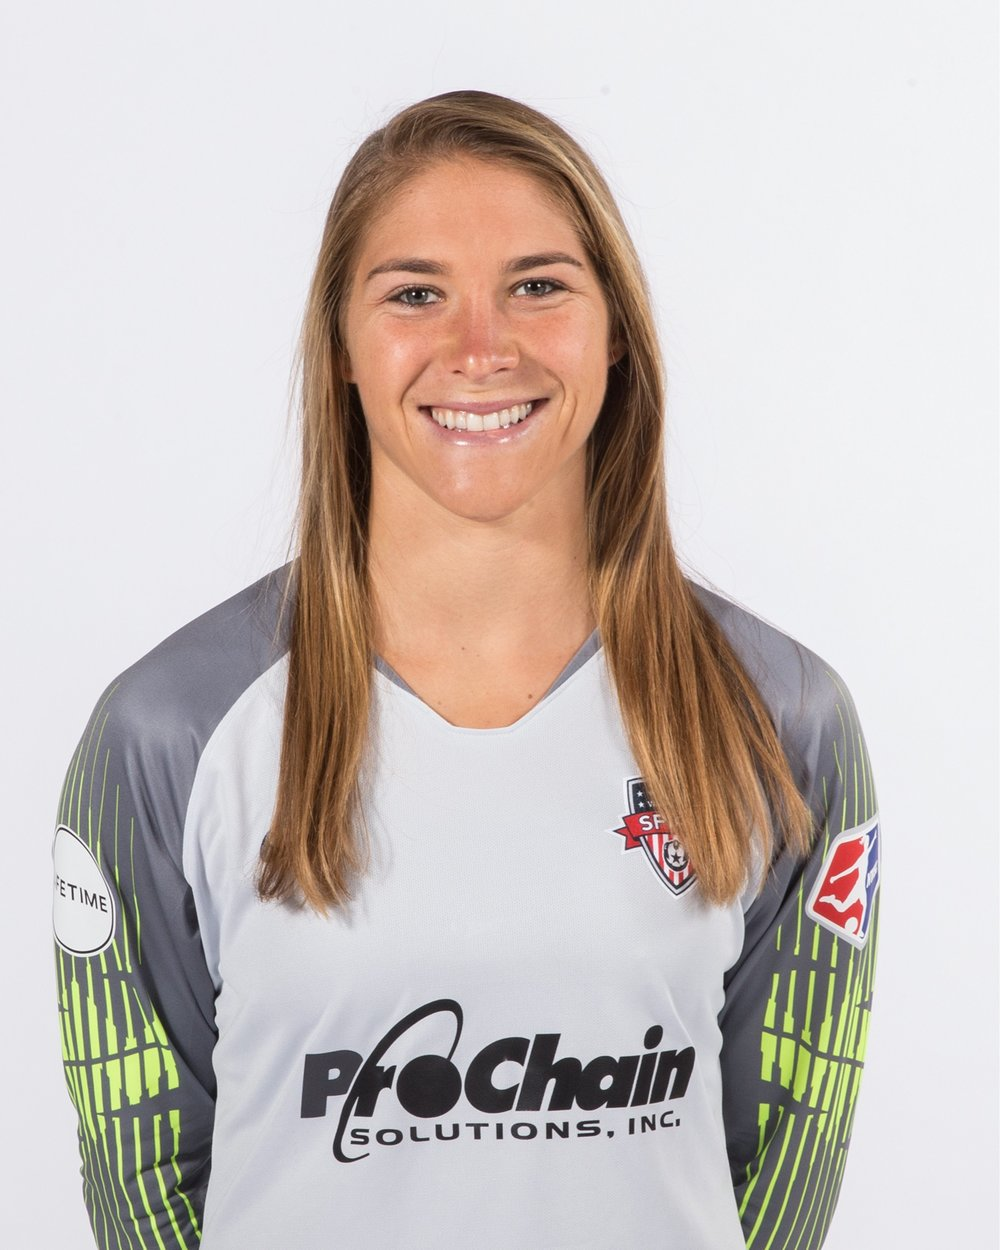 Aubrey Bledsoe - Aubrey is a professional soccer player for the Washington Spirit. In her first year with the team she set a new league record with 108 saves in a season. She began her professional career after graduating from Wake Forest University in 2014 and the past 4 years have taken her to Norway, Denmark, Australia, and three different teams in the U.S. She is passionate about loving her teammates, traveling, baking, and is very close to her family.